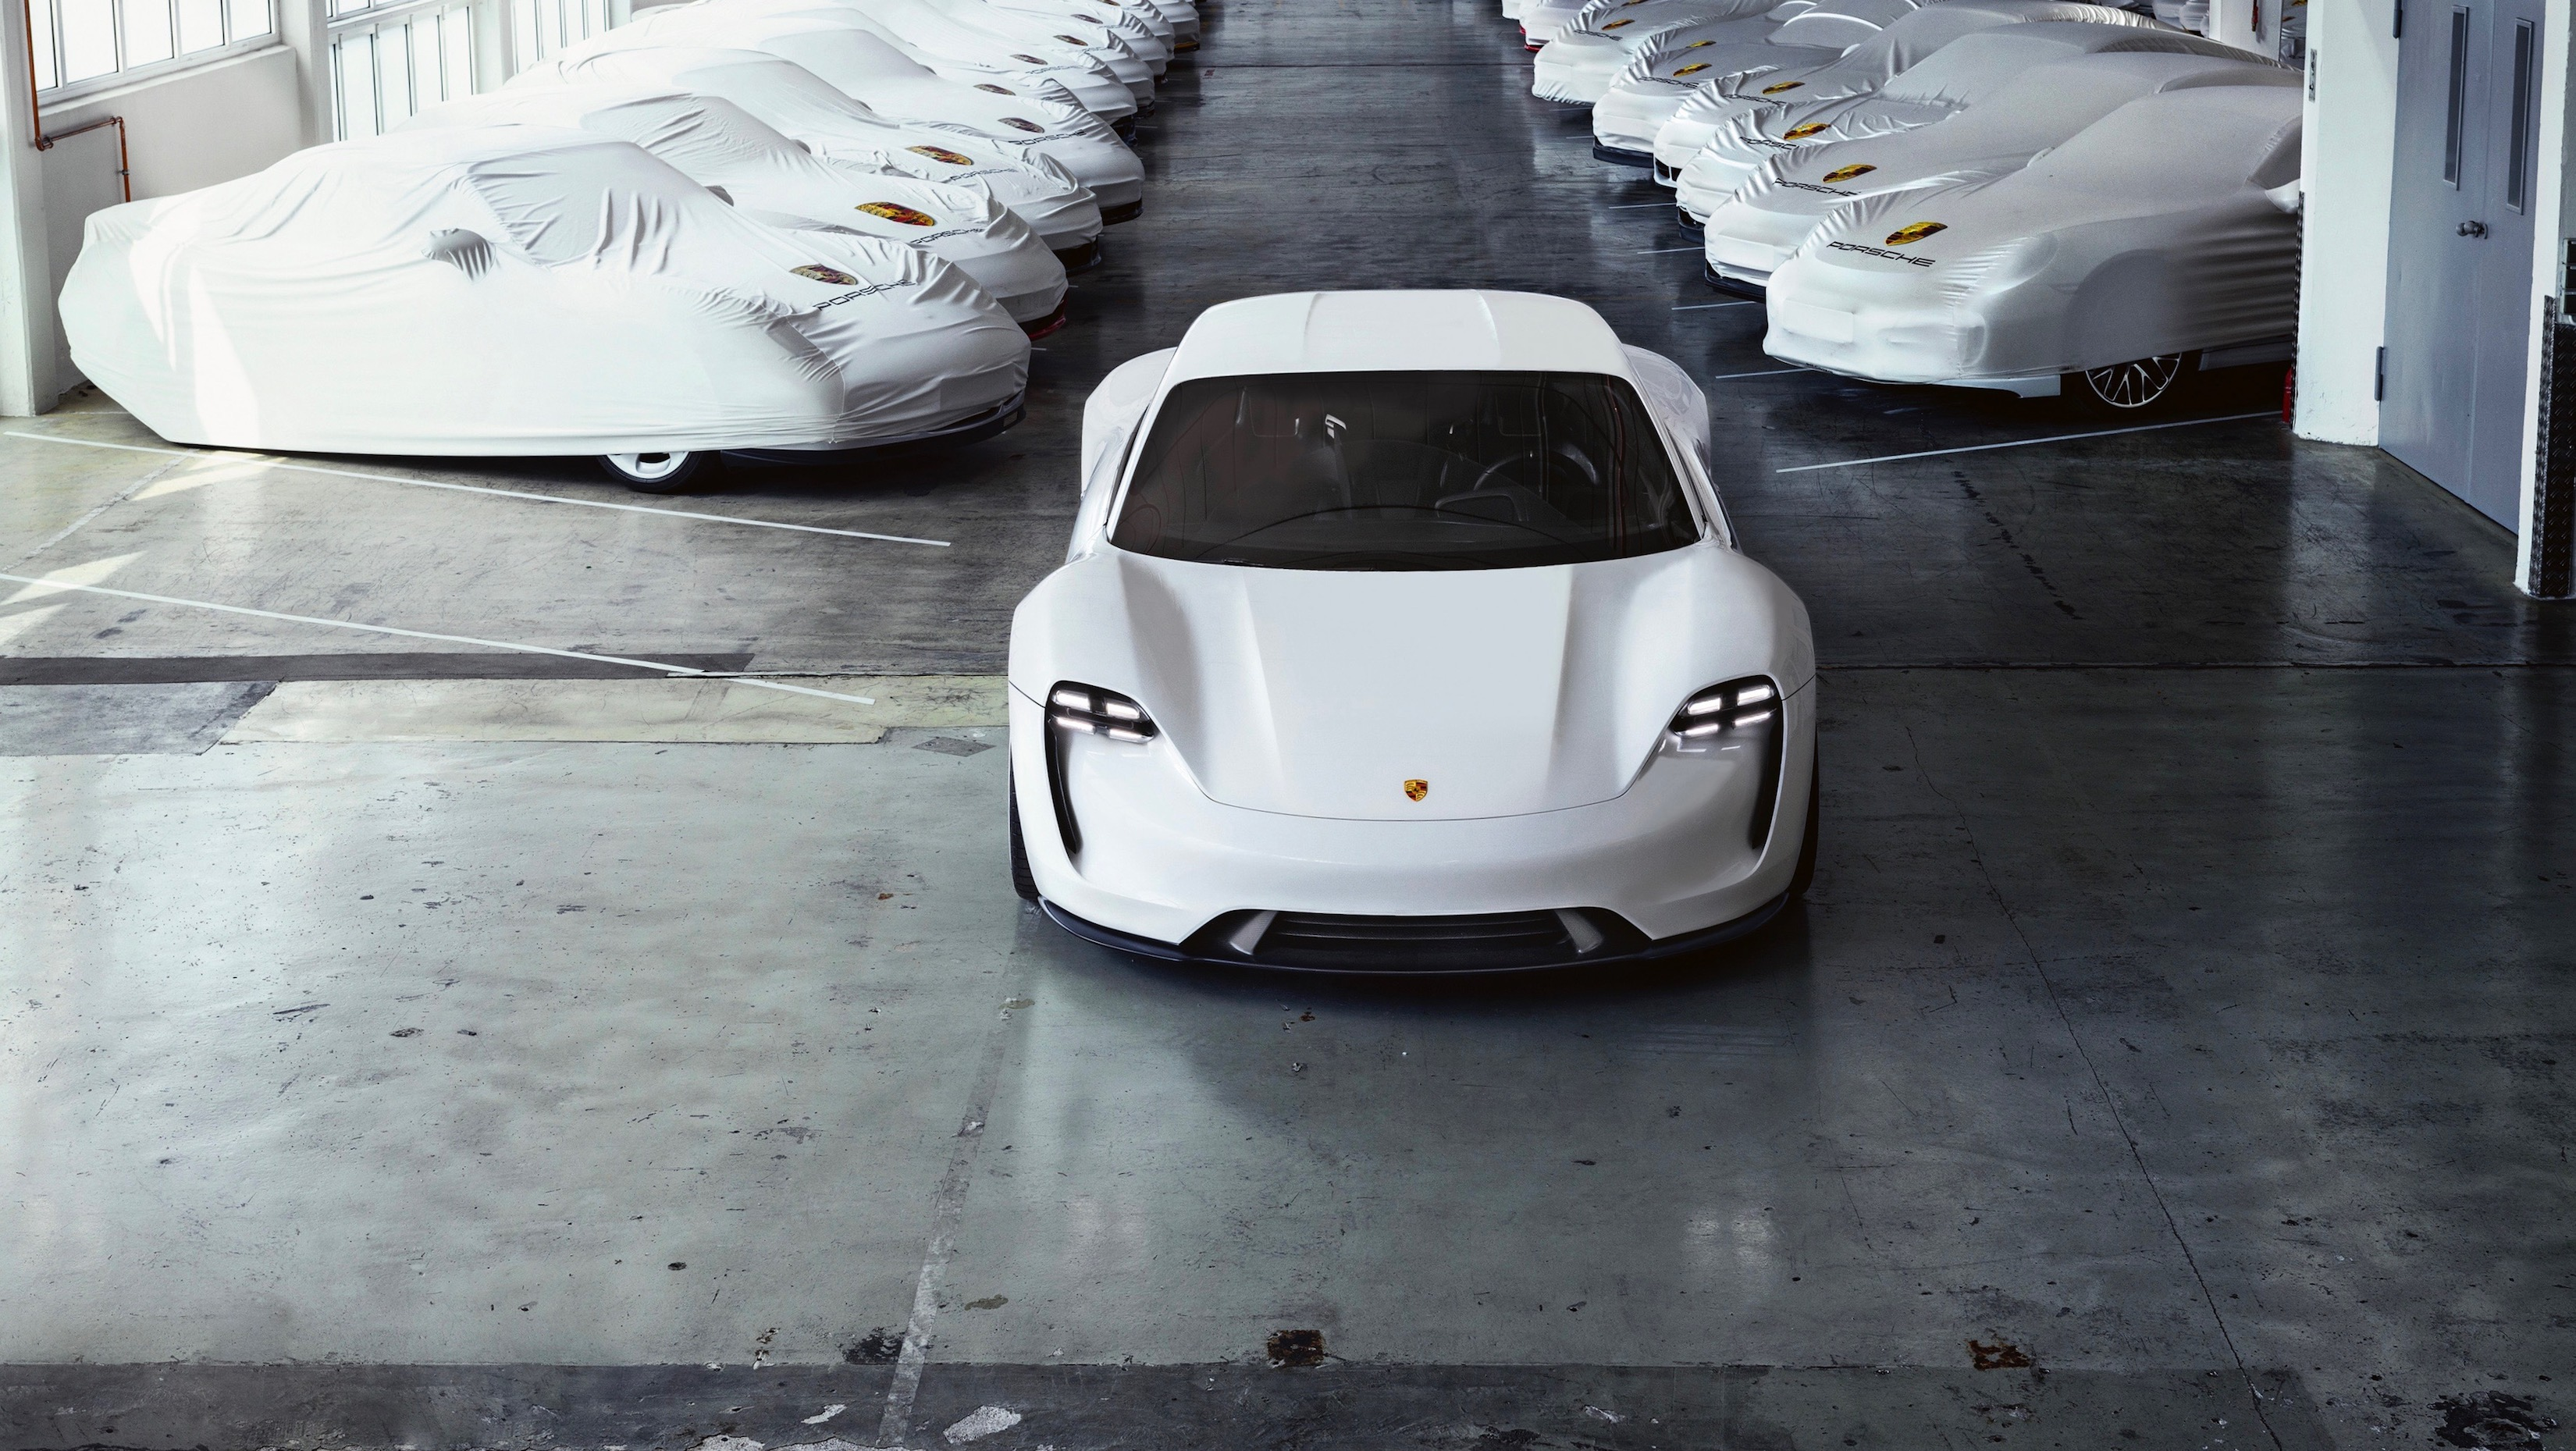 PC Revue | The first Porsche electric car loads faster than